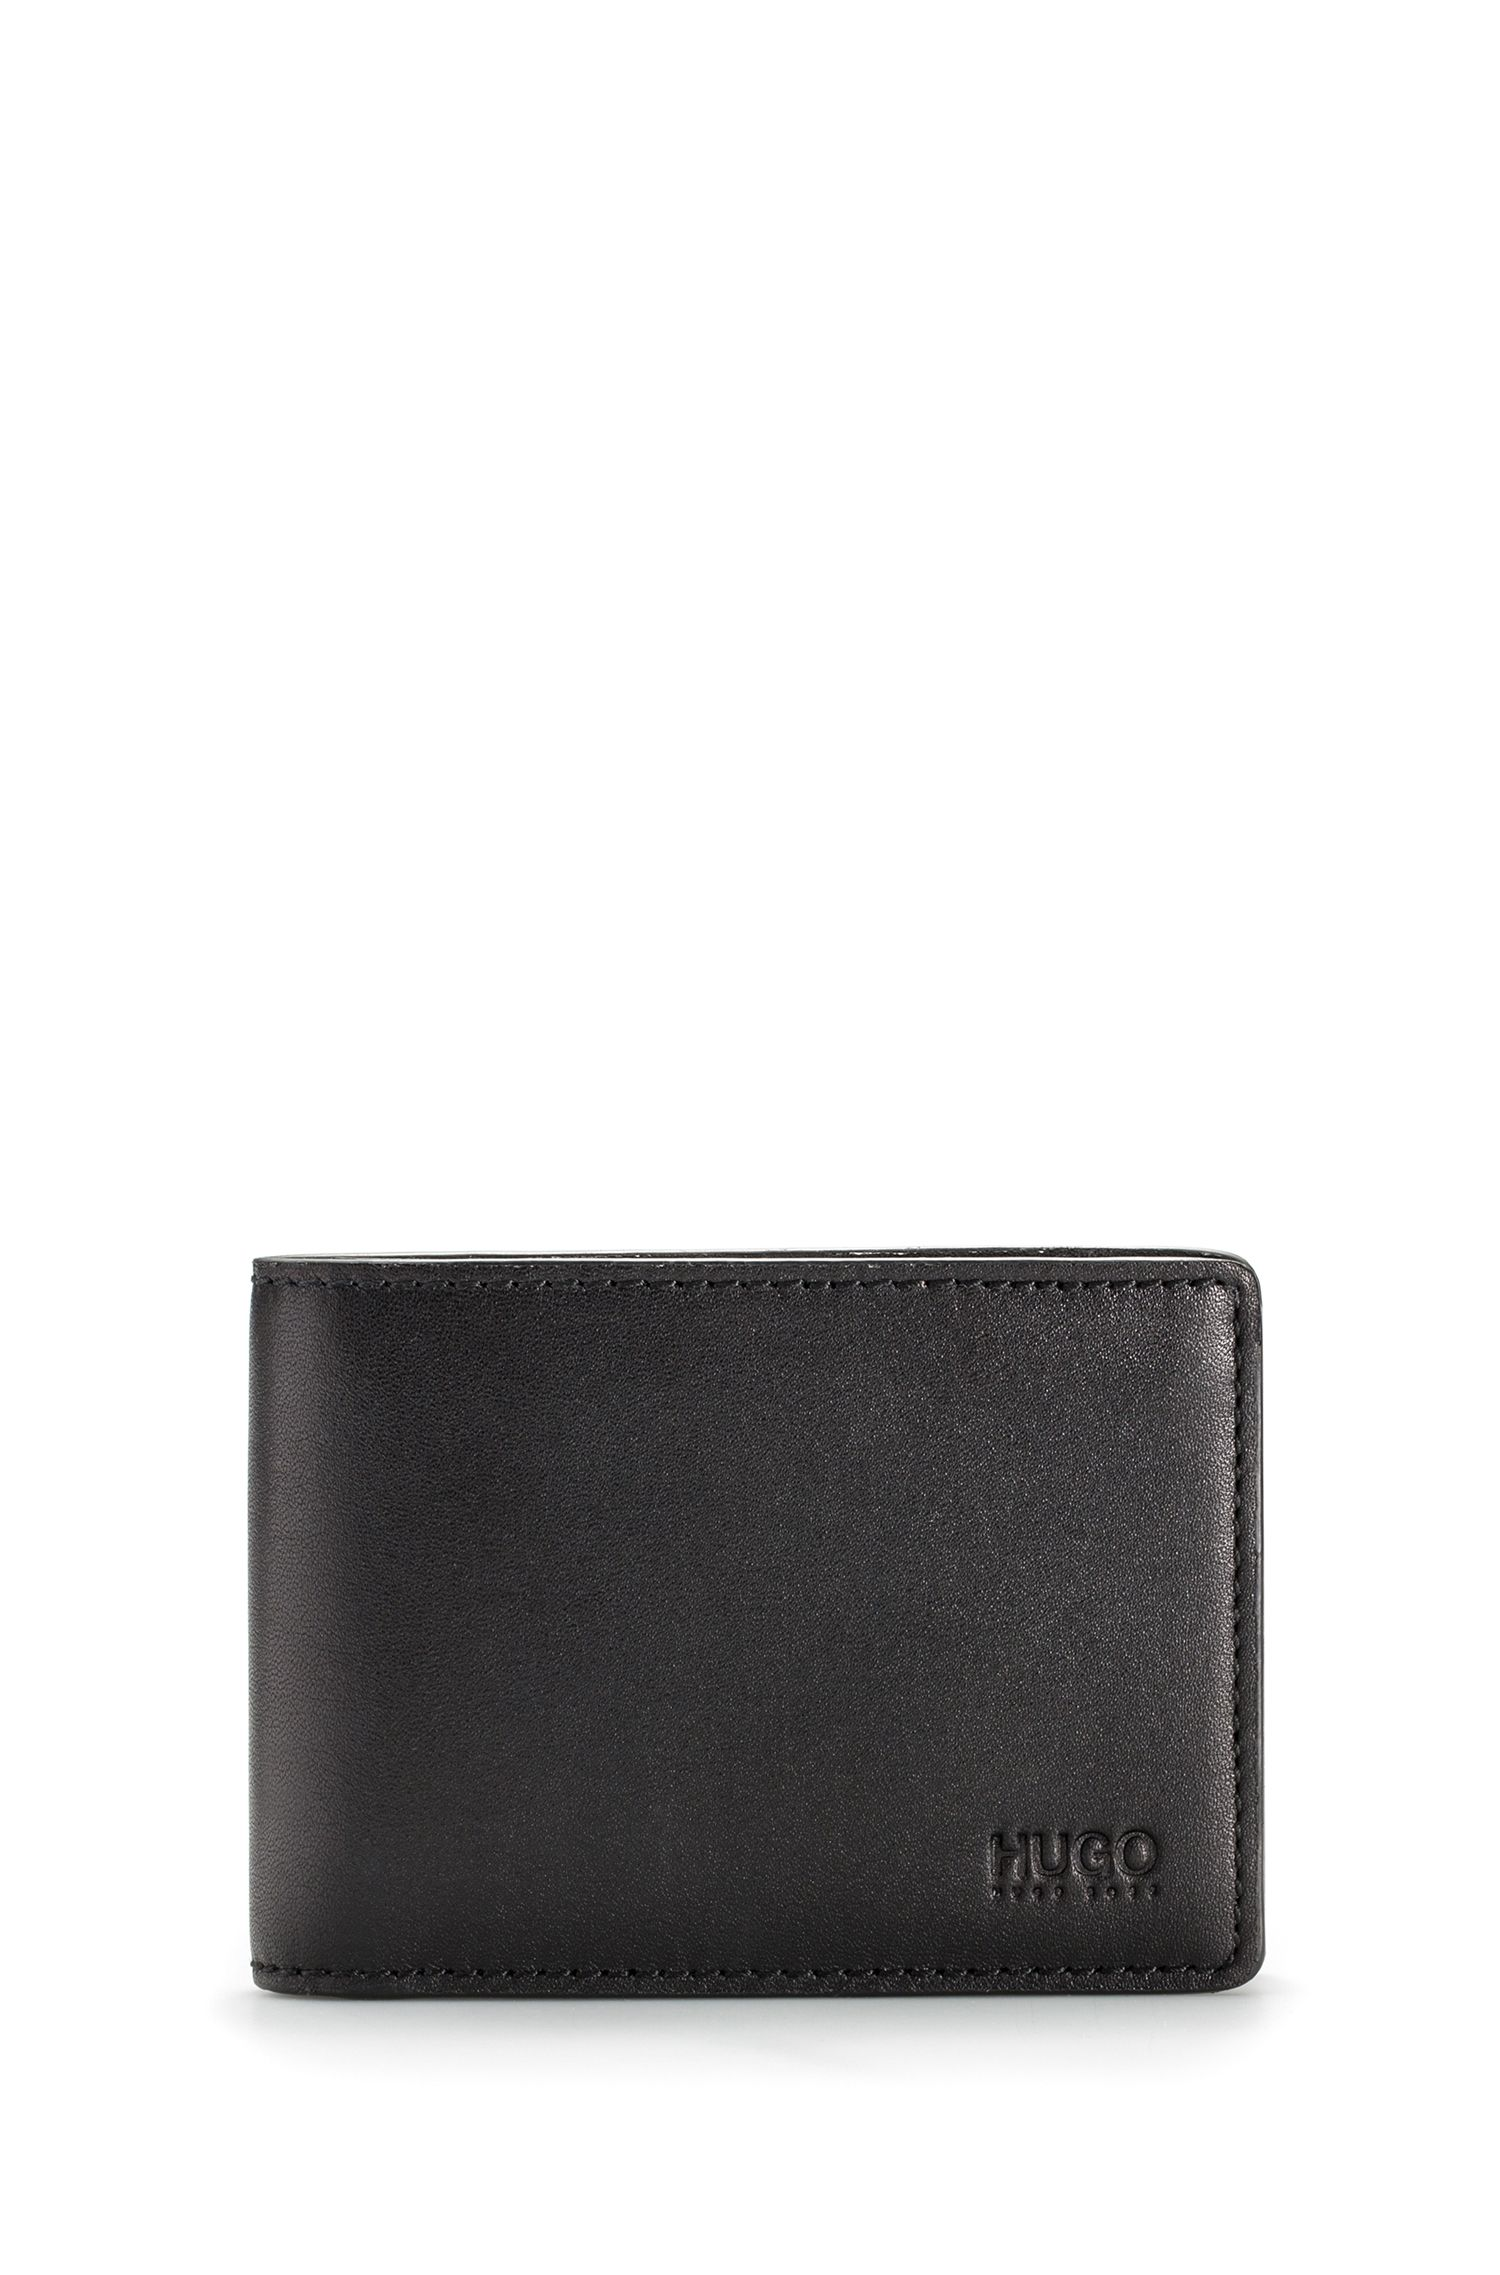 Leather Billfold Wallet | Subway , Black